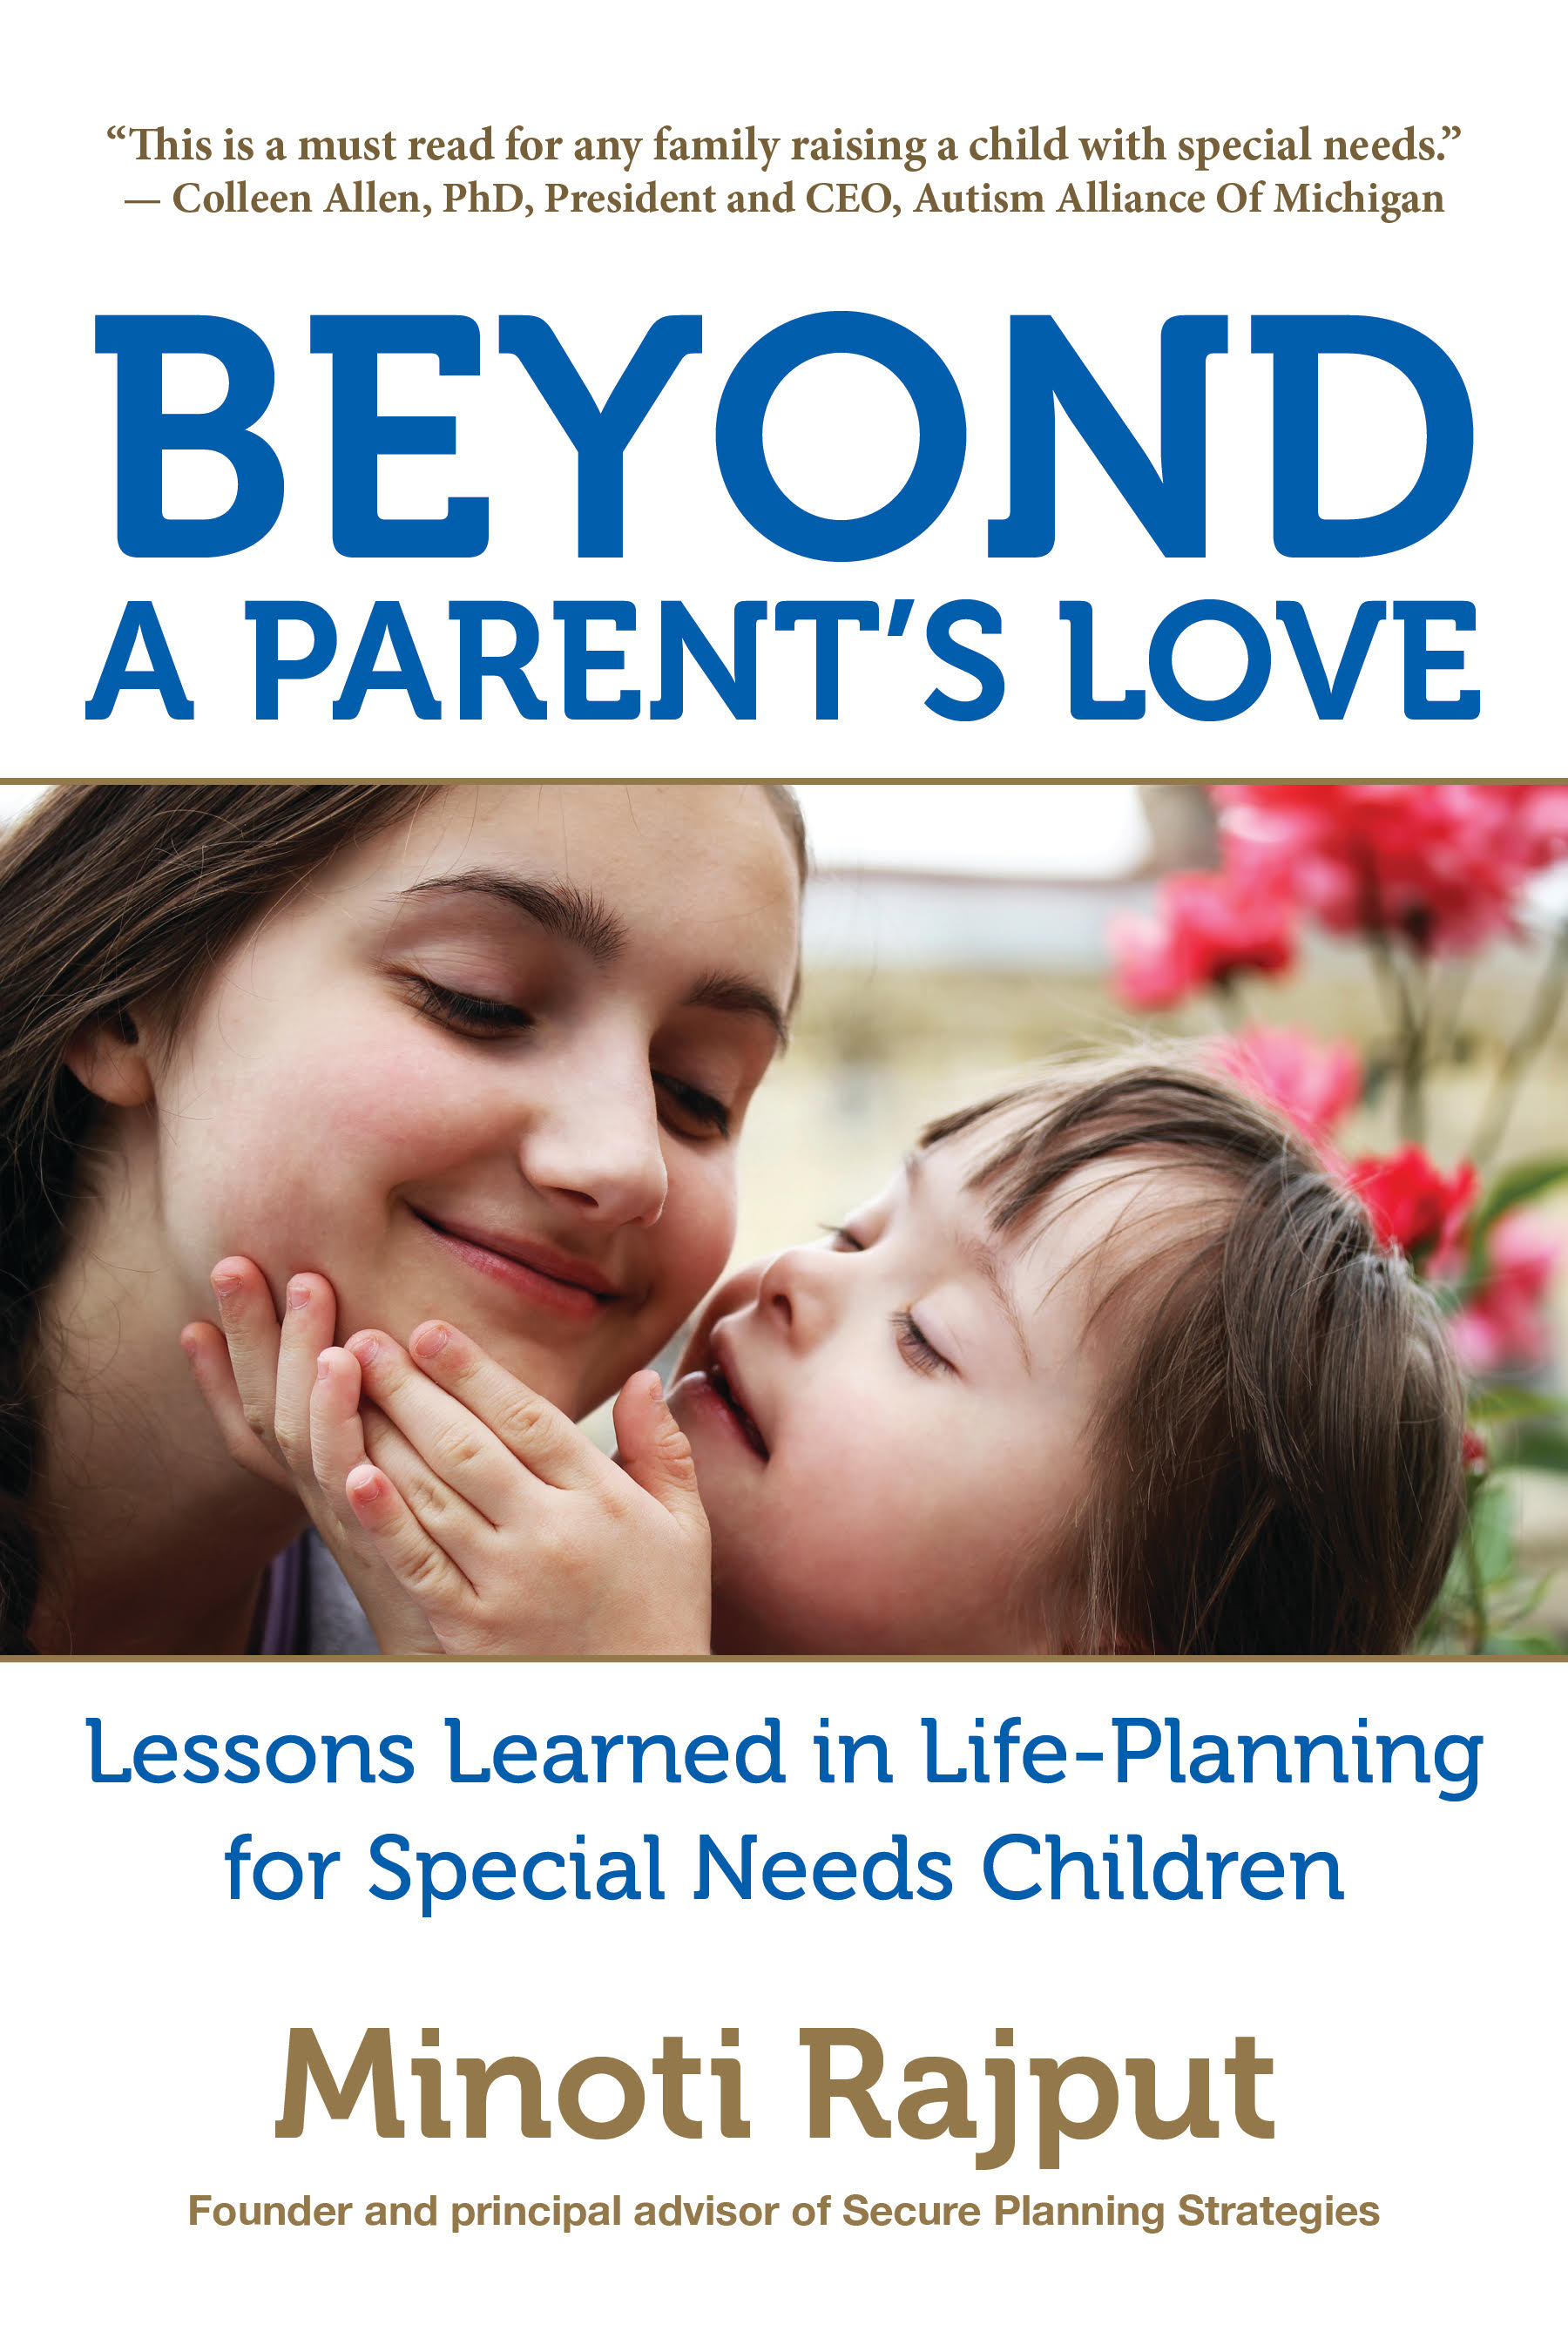 New Book Provides Life Planning with Financial & Legal Guidance for Special-Needs Families